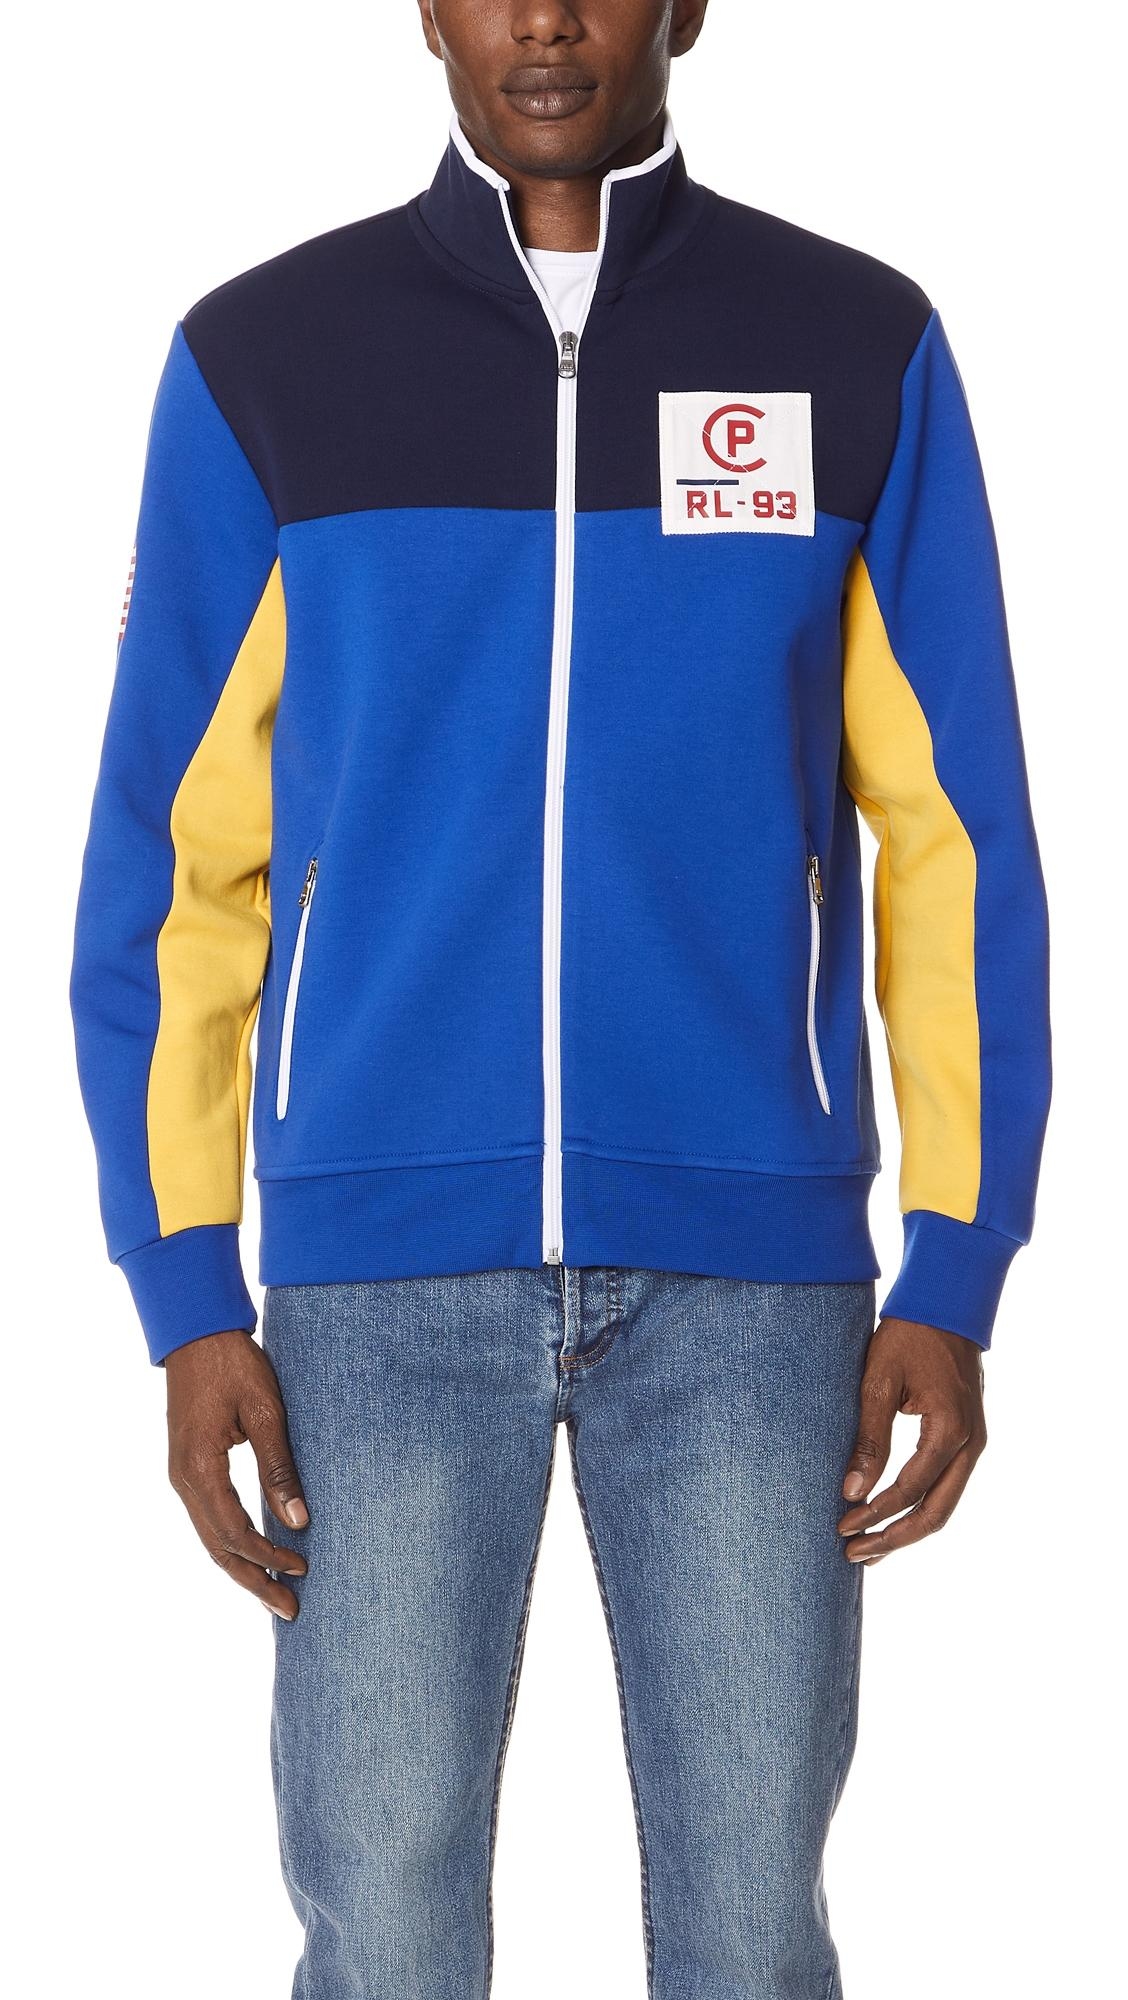 Polo Ralph Lauren Men's Cp-93 Double-Knit Track Jacket In Royal